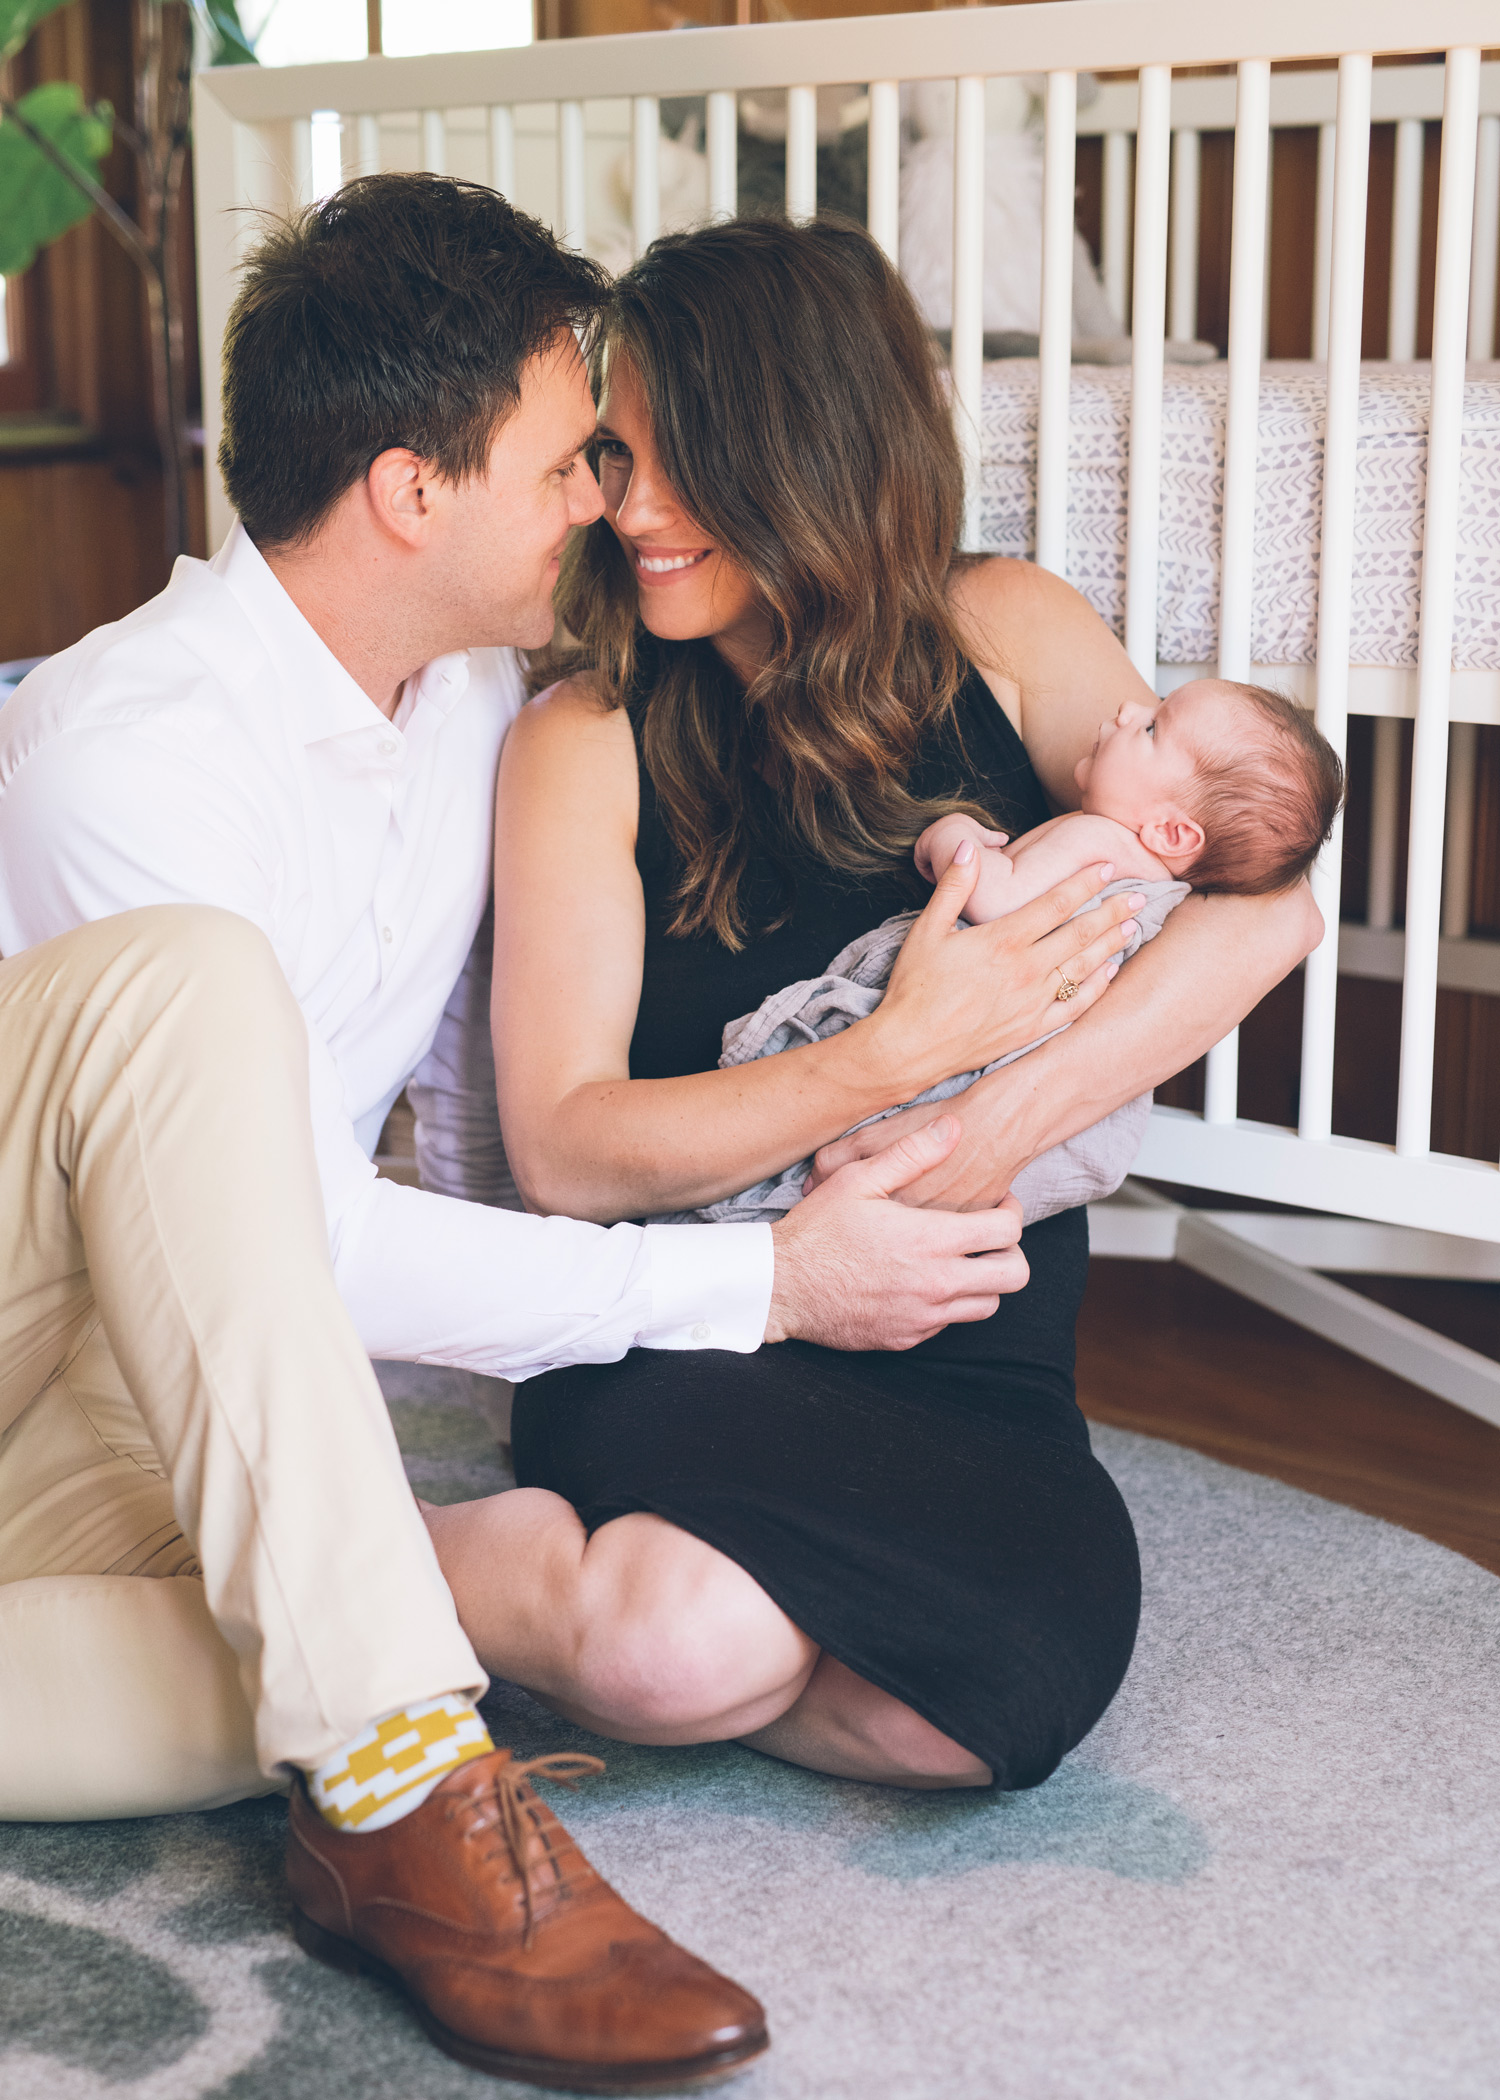 new-parents-gazing-at-each-others-eyes-while-holding-a-newborn-boy.jpg